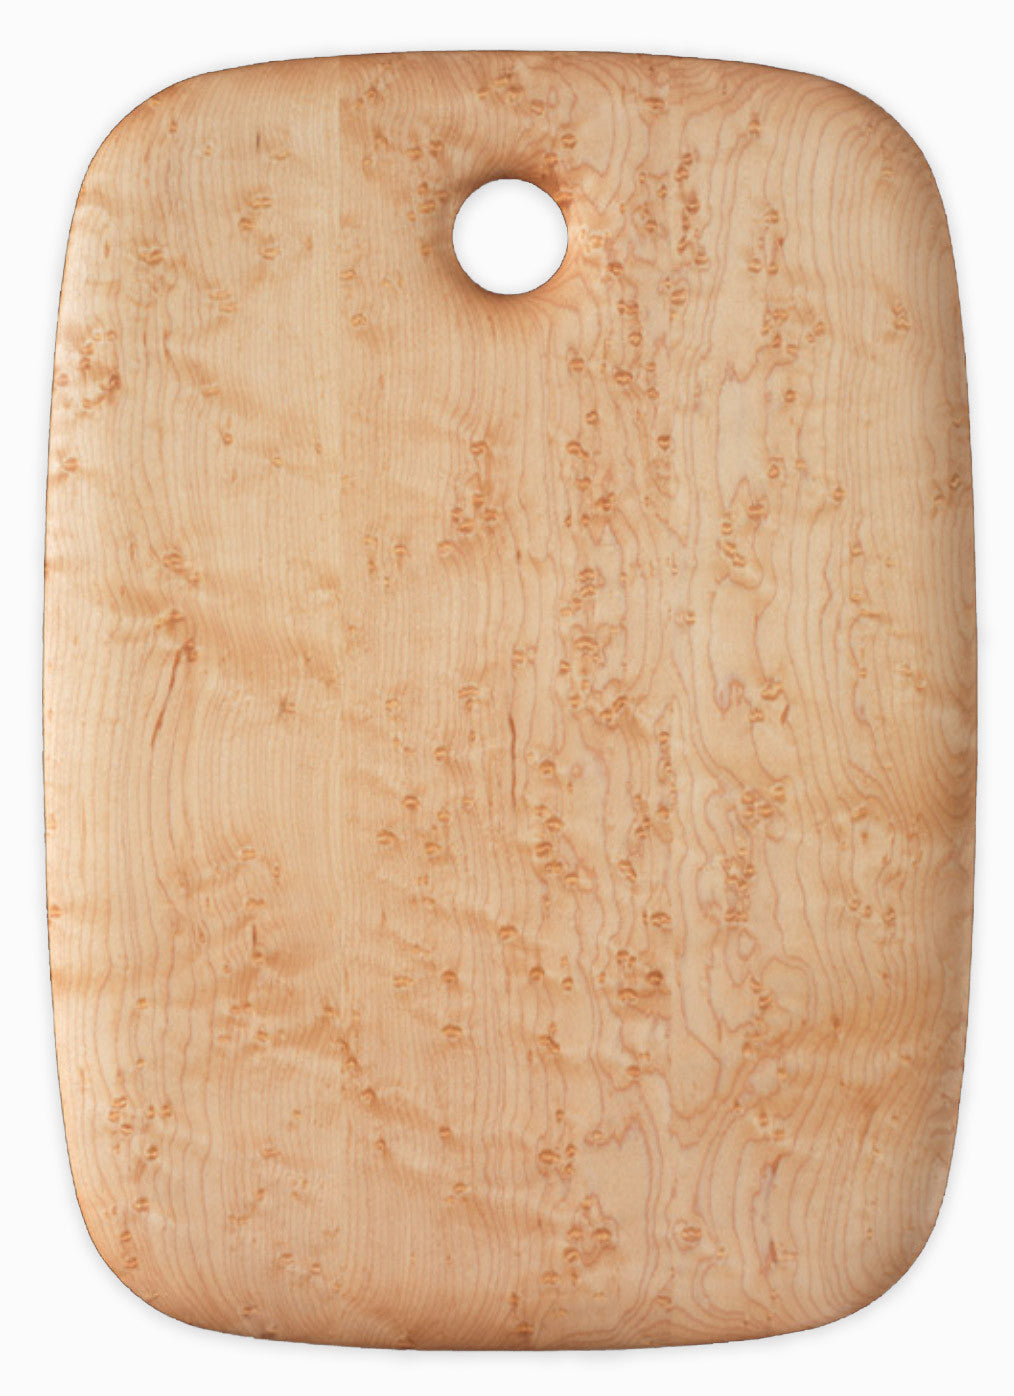 Bird's Eye Maple Breadboard - 11 inches x 15.5 inches